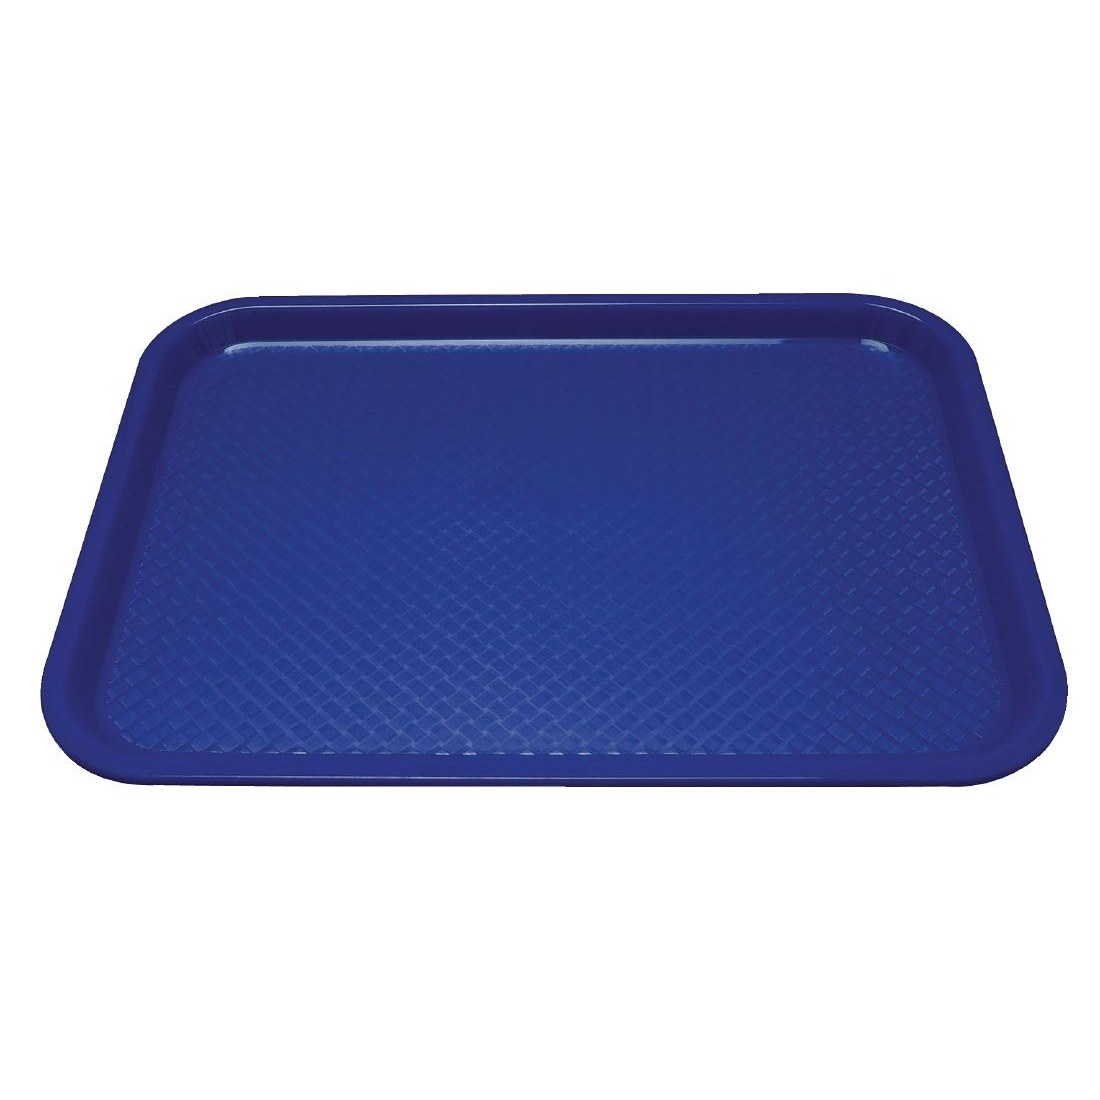 Kristallon Plastic Fast Food Tray Blue Medium